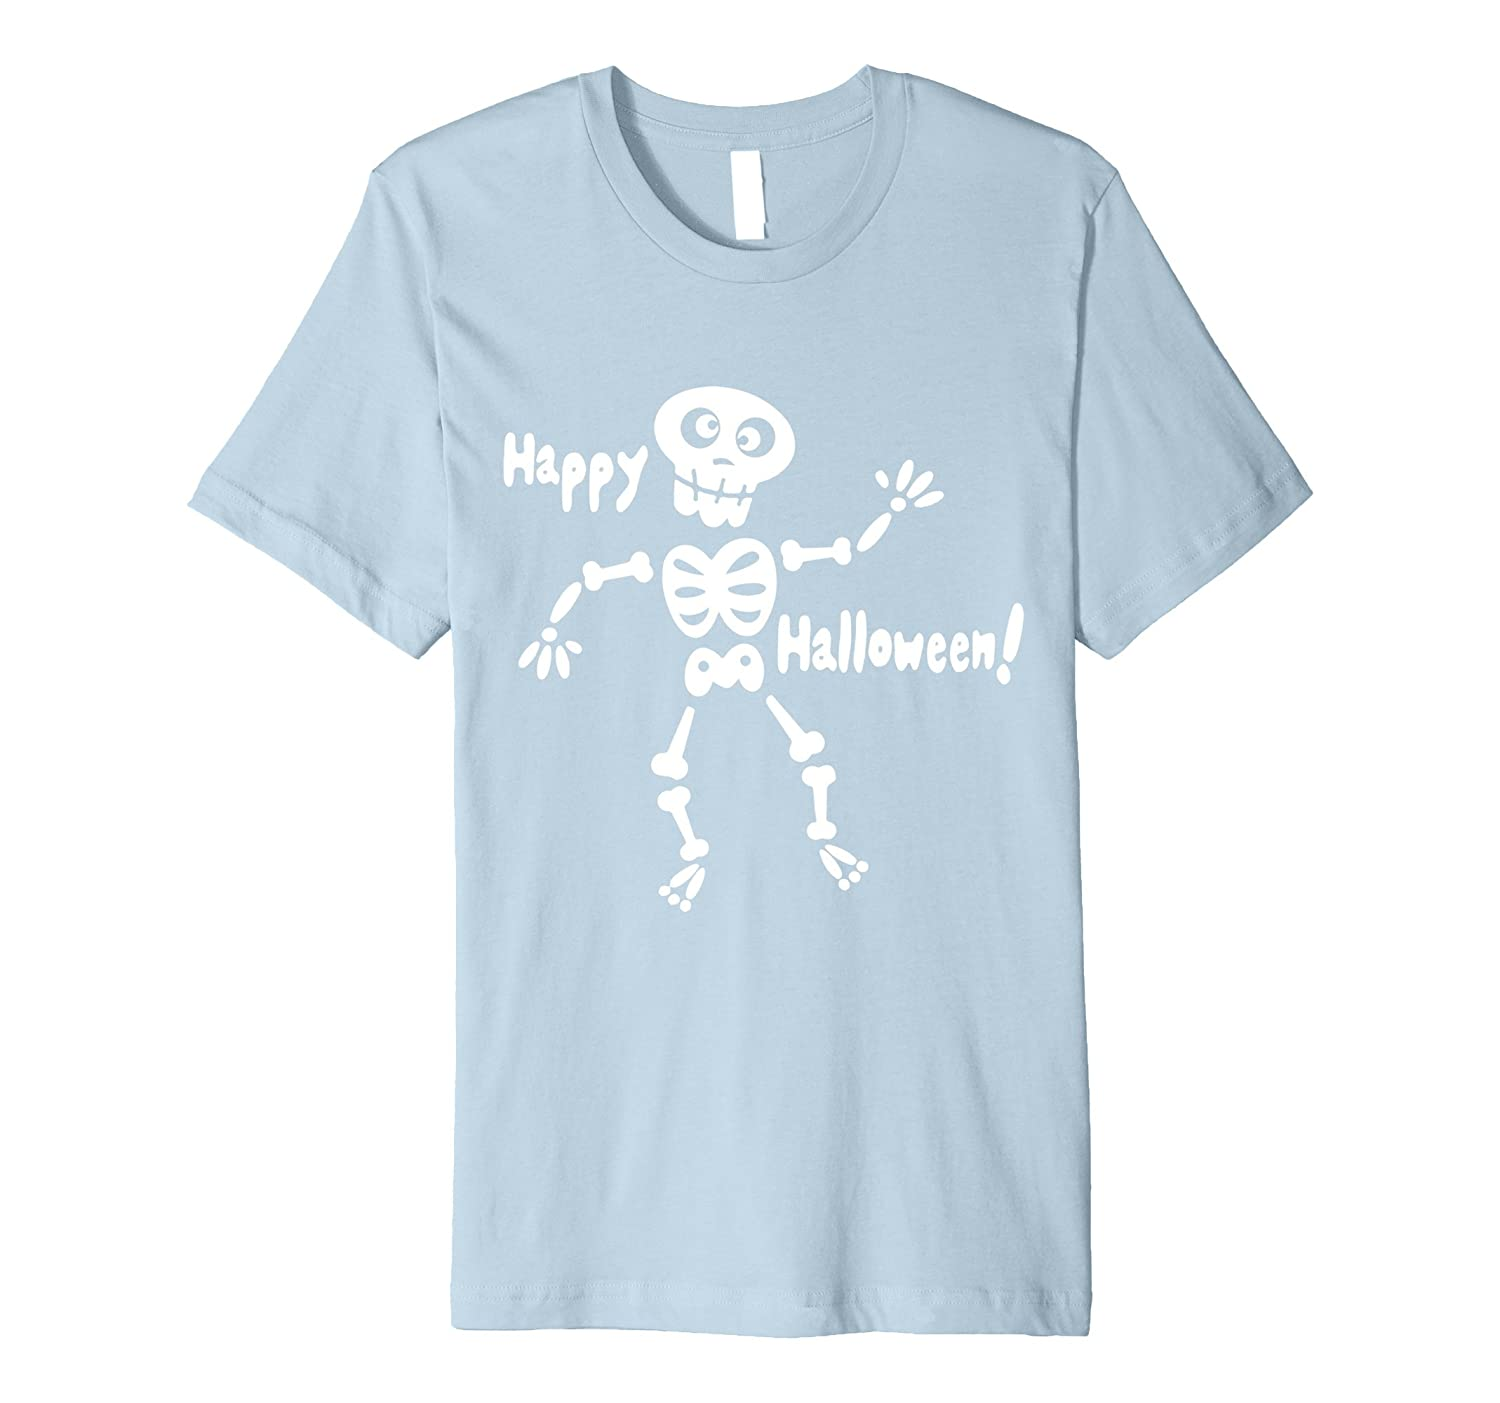 Big Boys Girls Glow In The Dark Skeleton Pre C1 T-shirt-FL